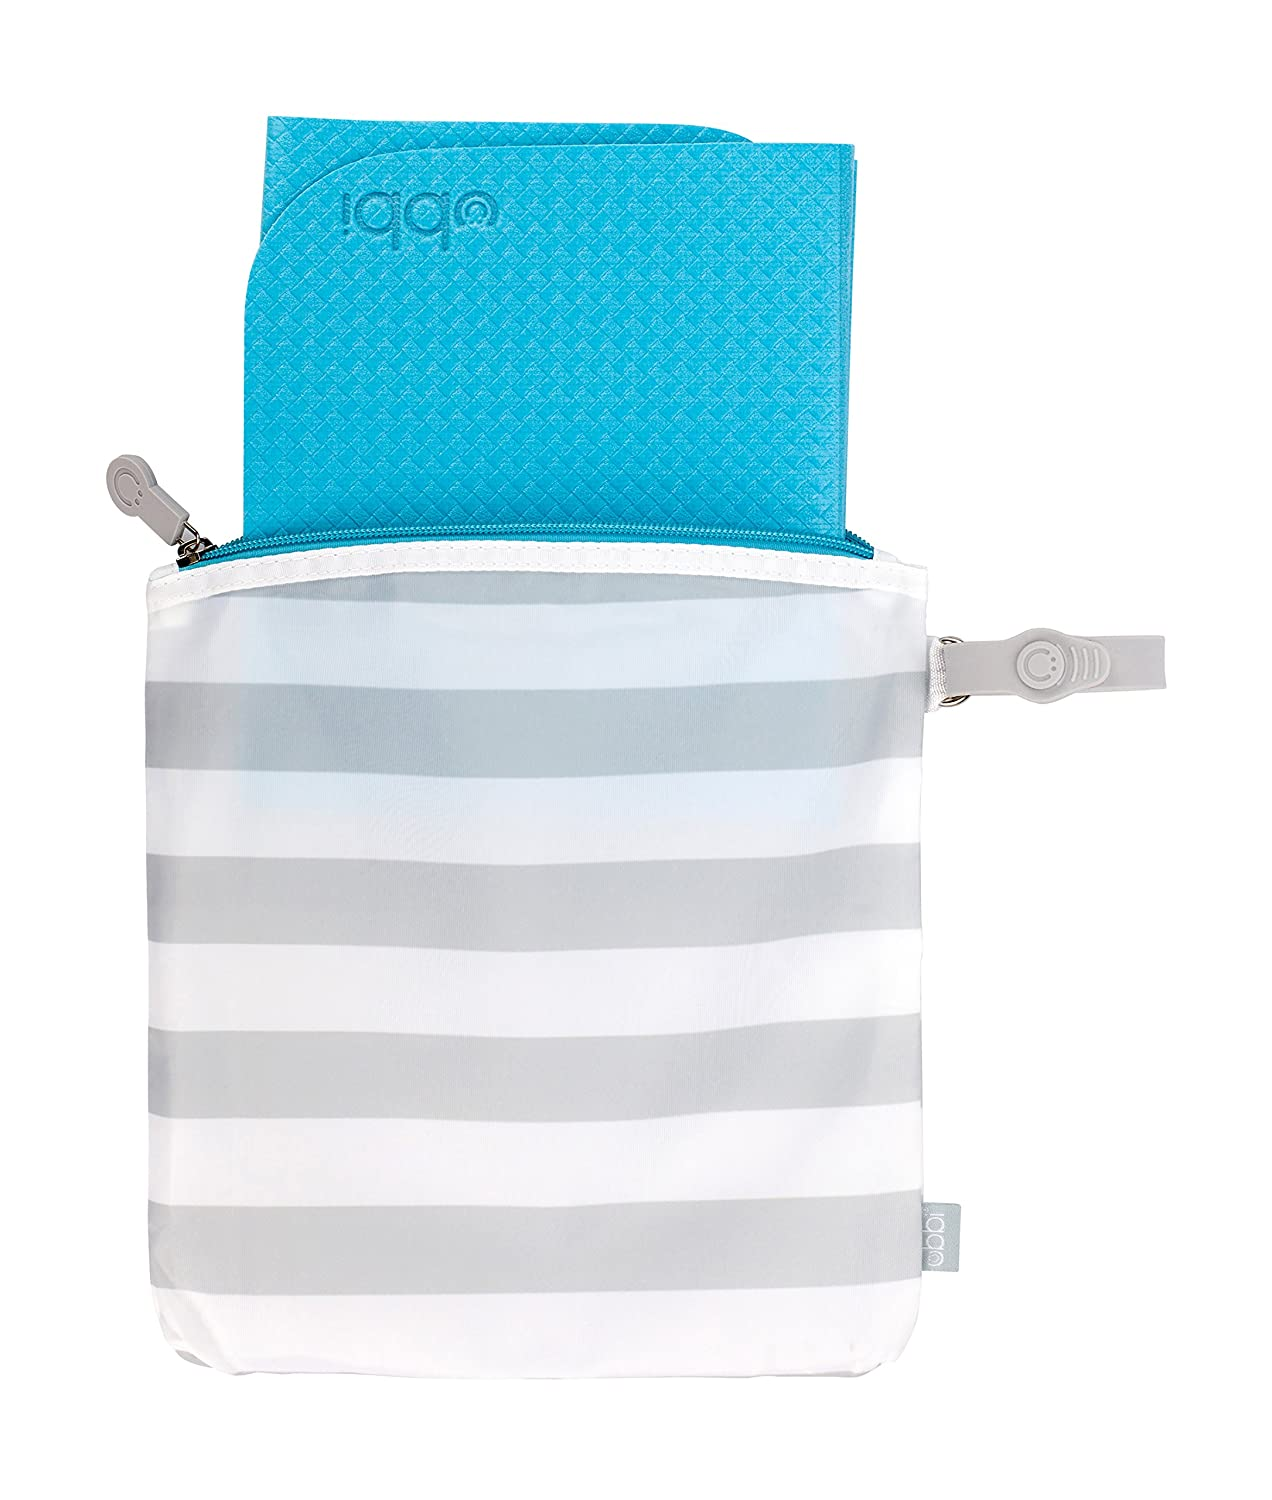 Ubbi On The Go Travel Diaper Gray and White Changing Mat Bag Baby Gift Pearhead 10164